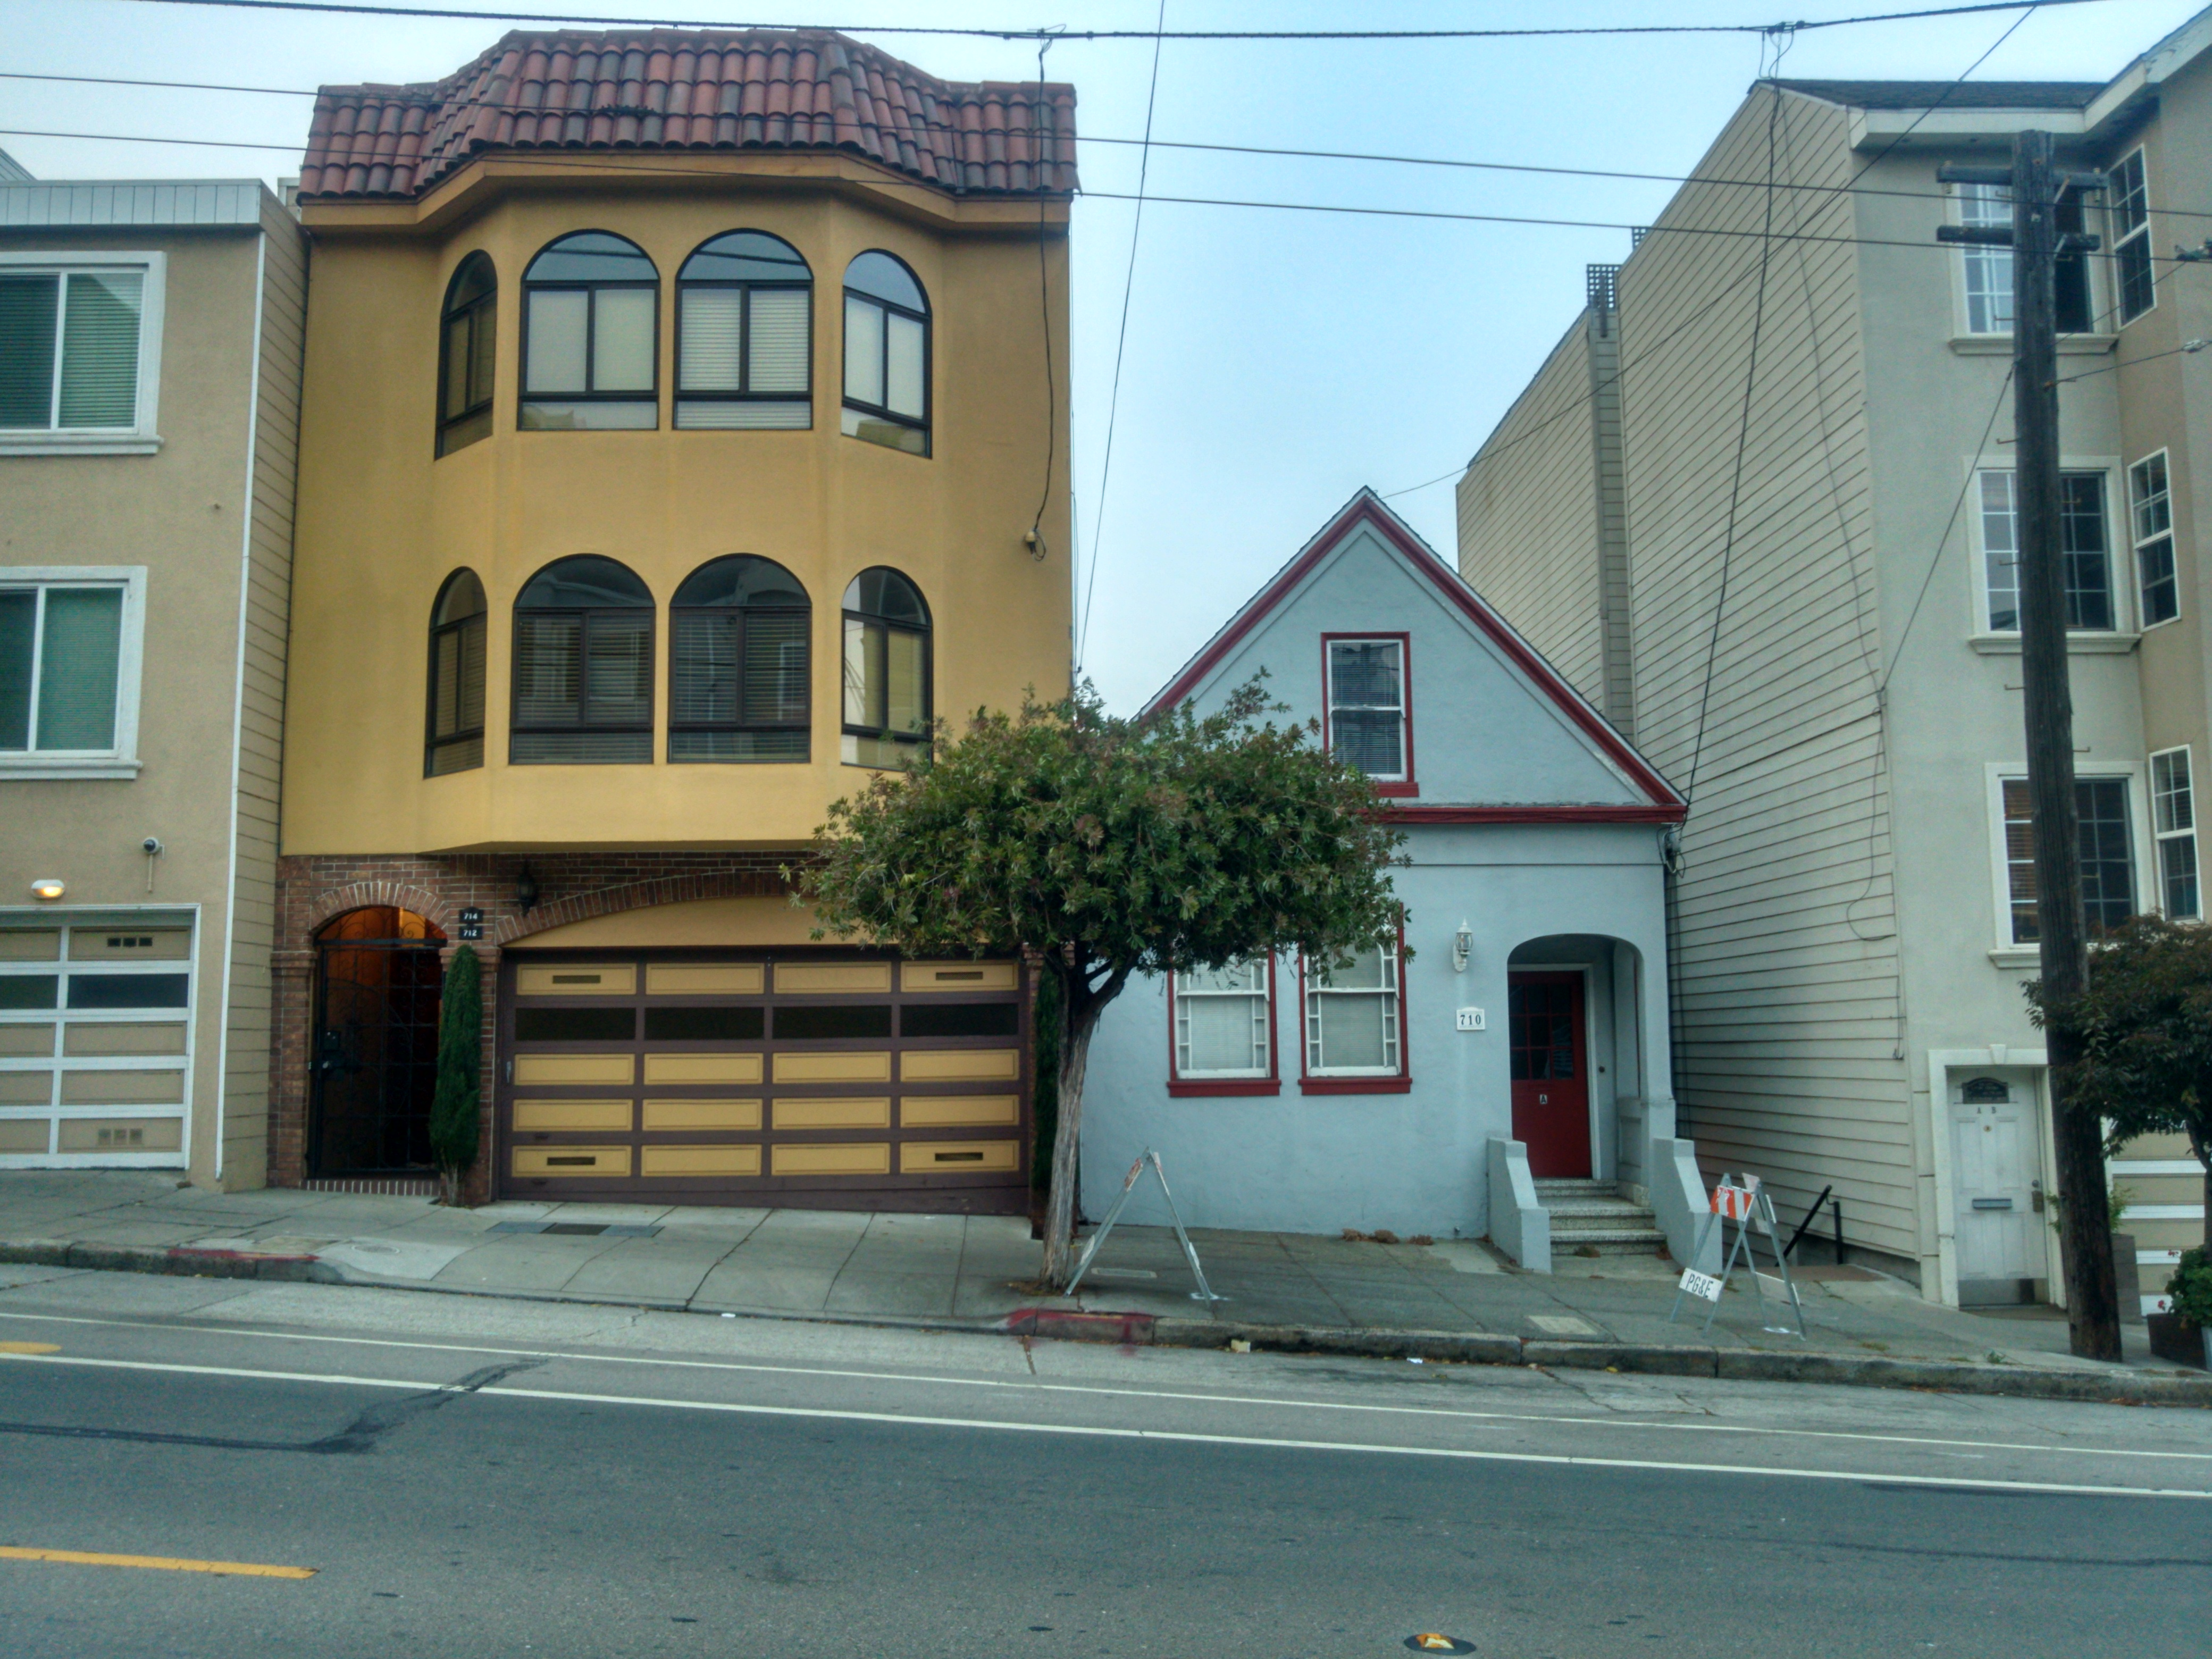 Example of the varying architecture in San Francisco